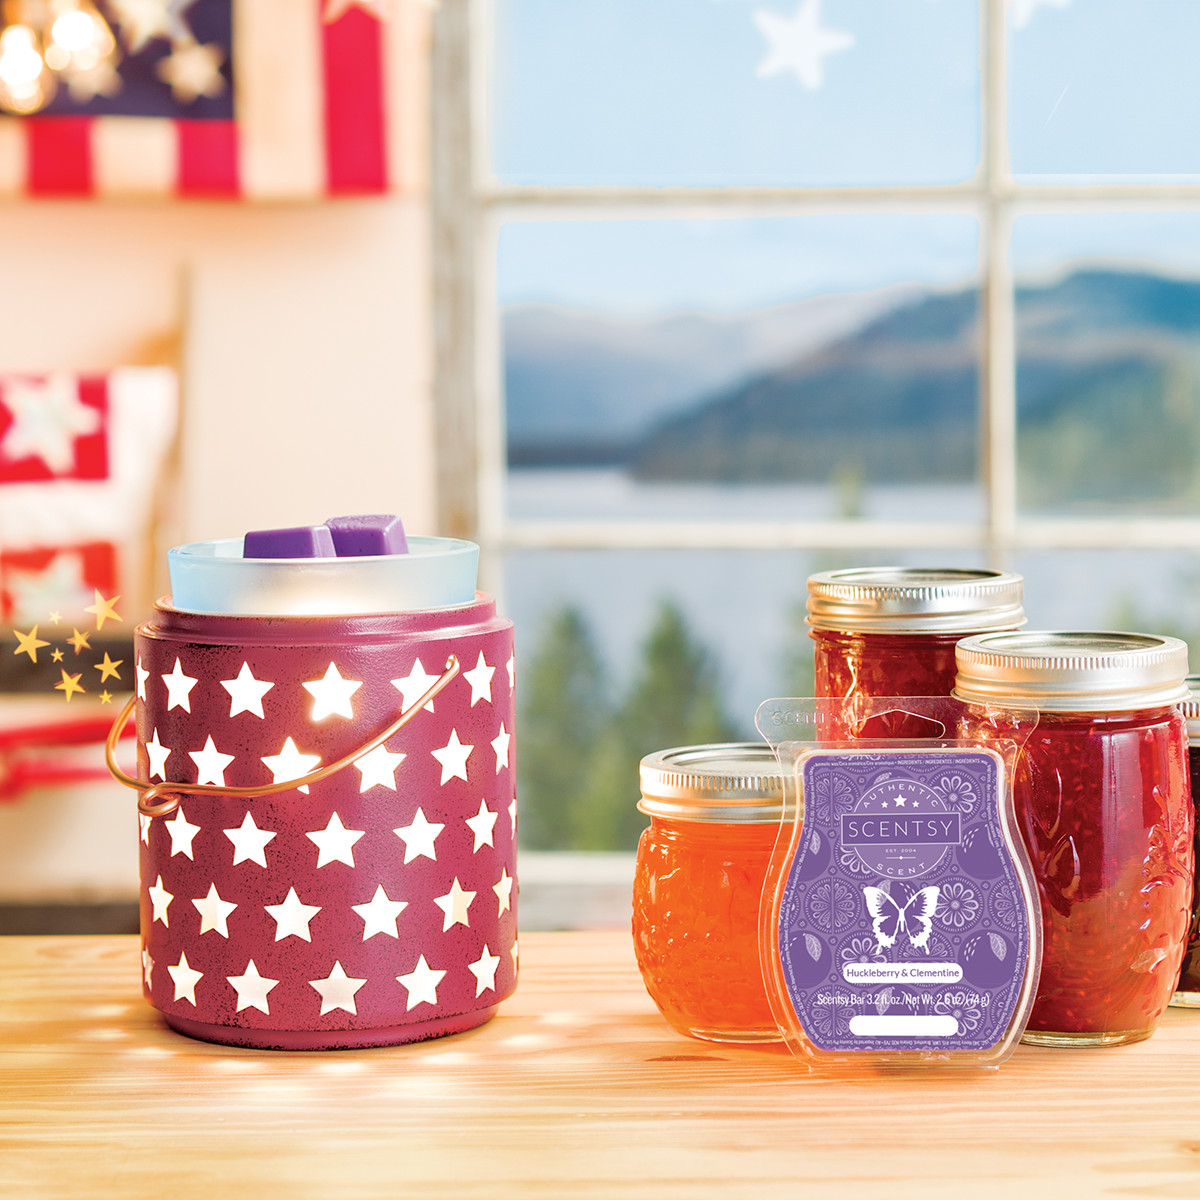 Scentsy®- Buy Online and ship to your door!